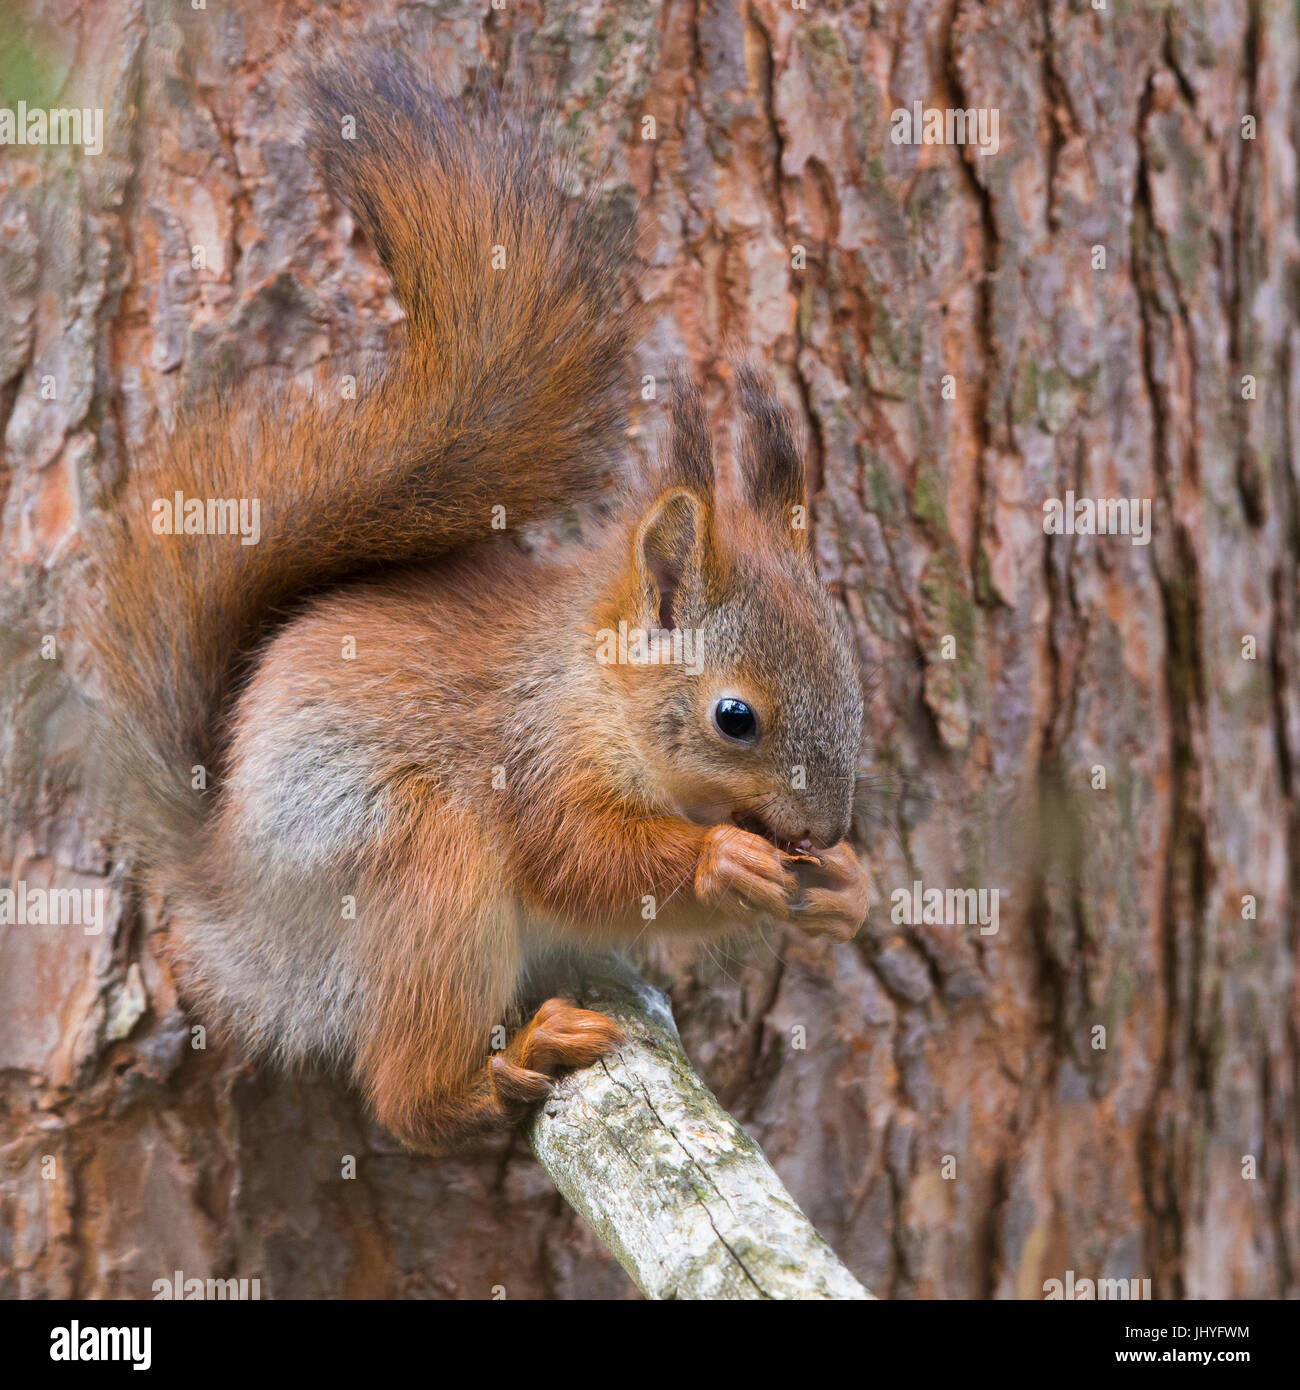 Red Squirrel (Sciurus vulgaris), aduld feeding and seeting on a pine branch - Stock Image